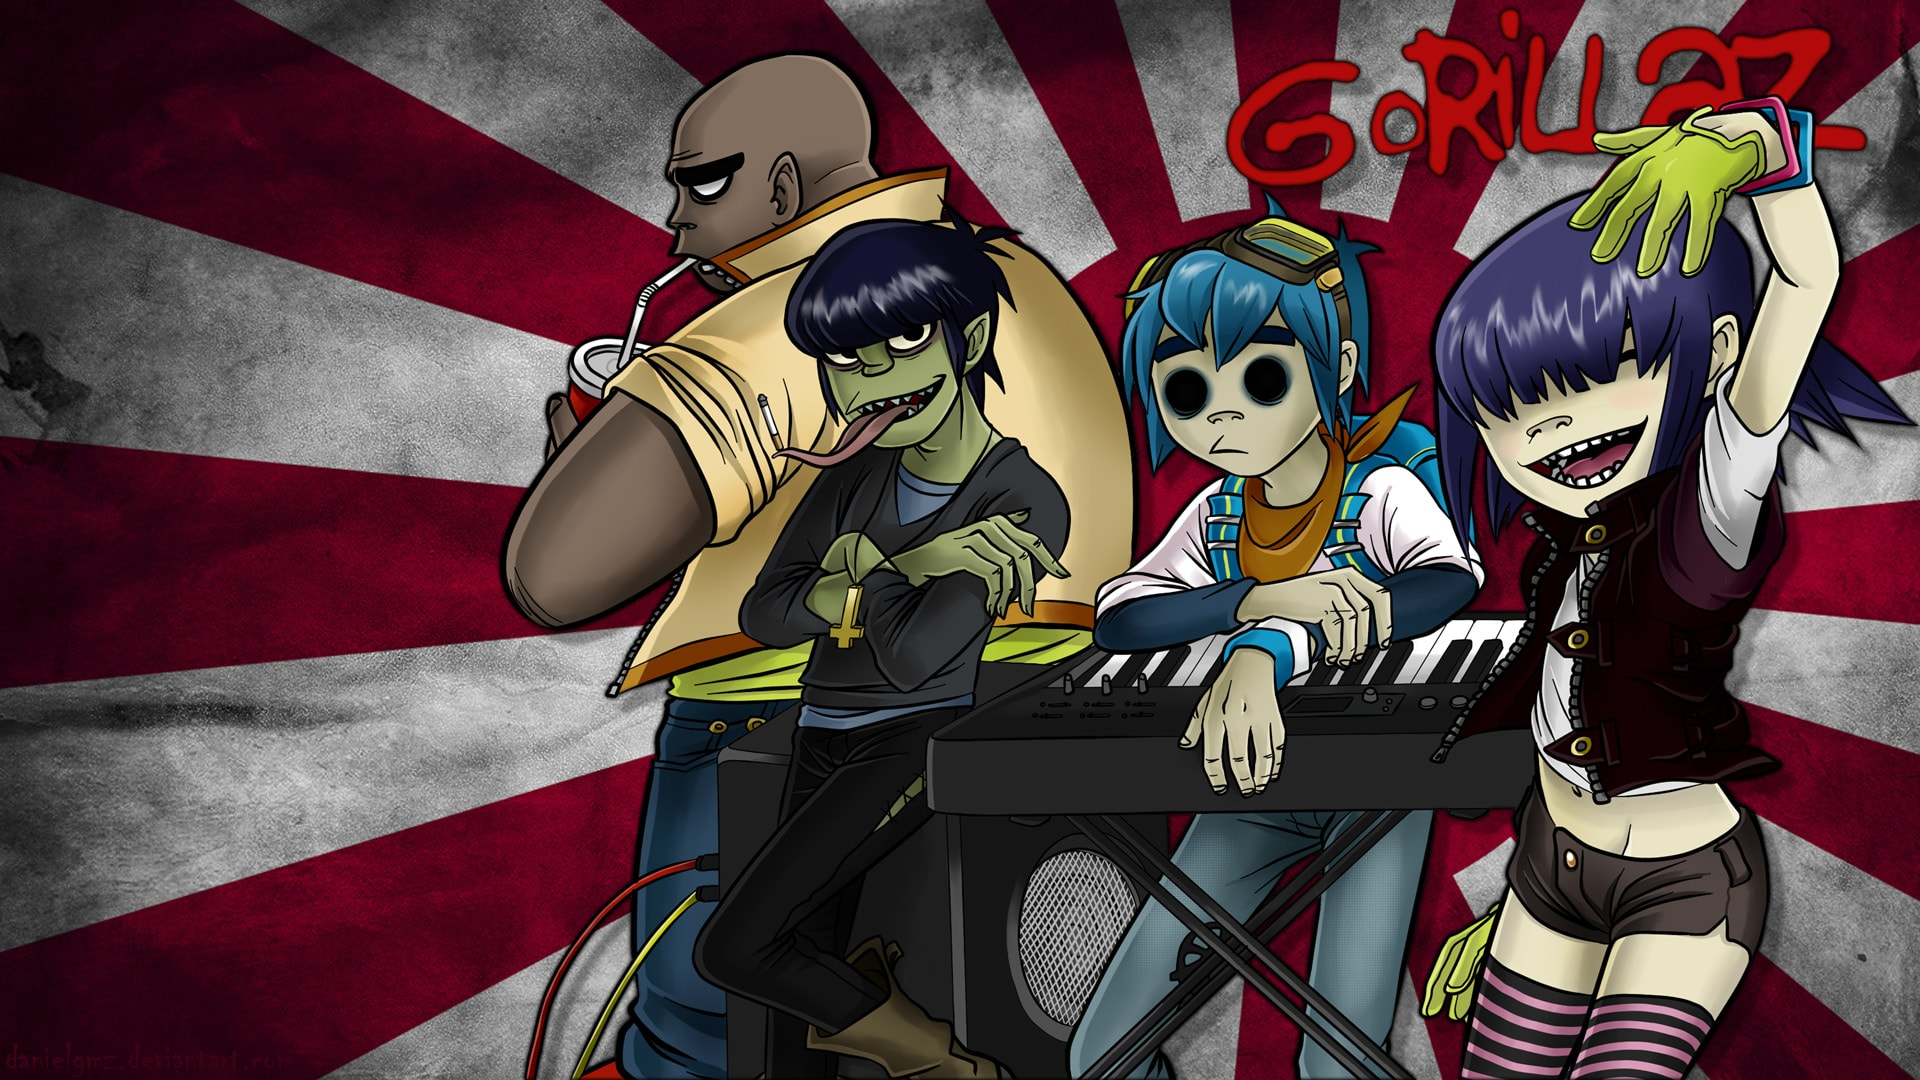 Gorillaz Hd Wallpapers 7wallpapersnet